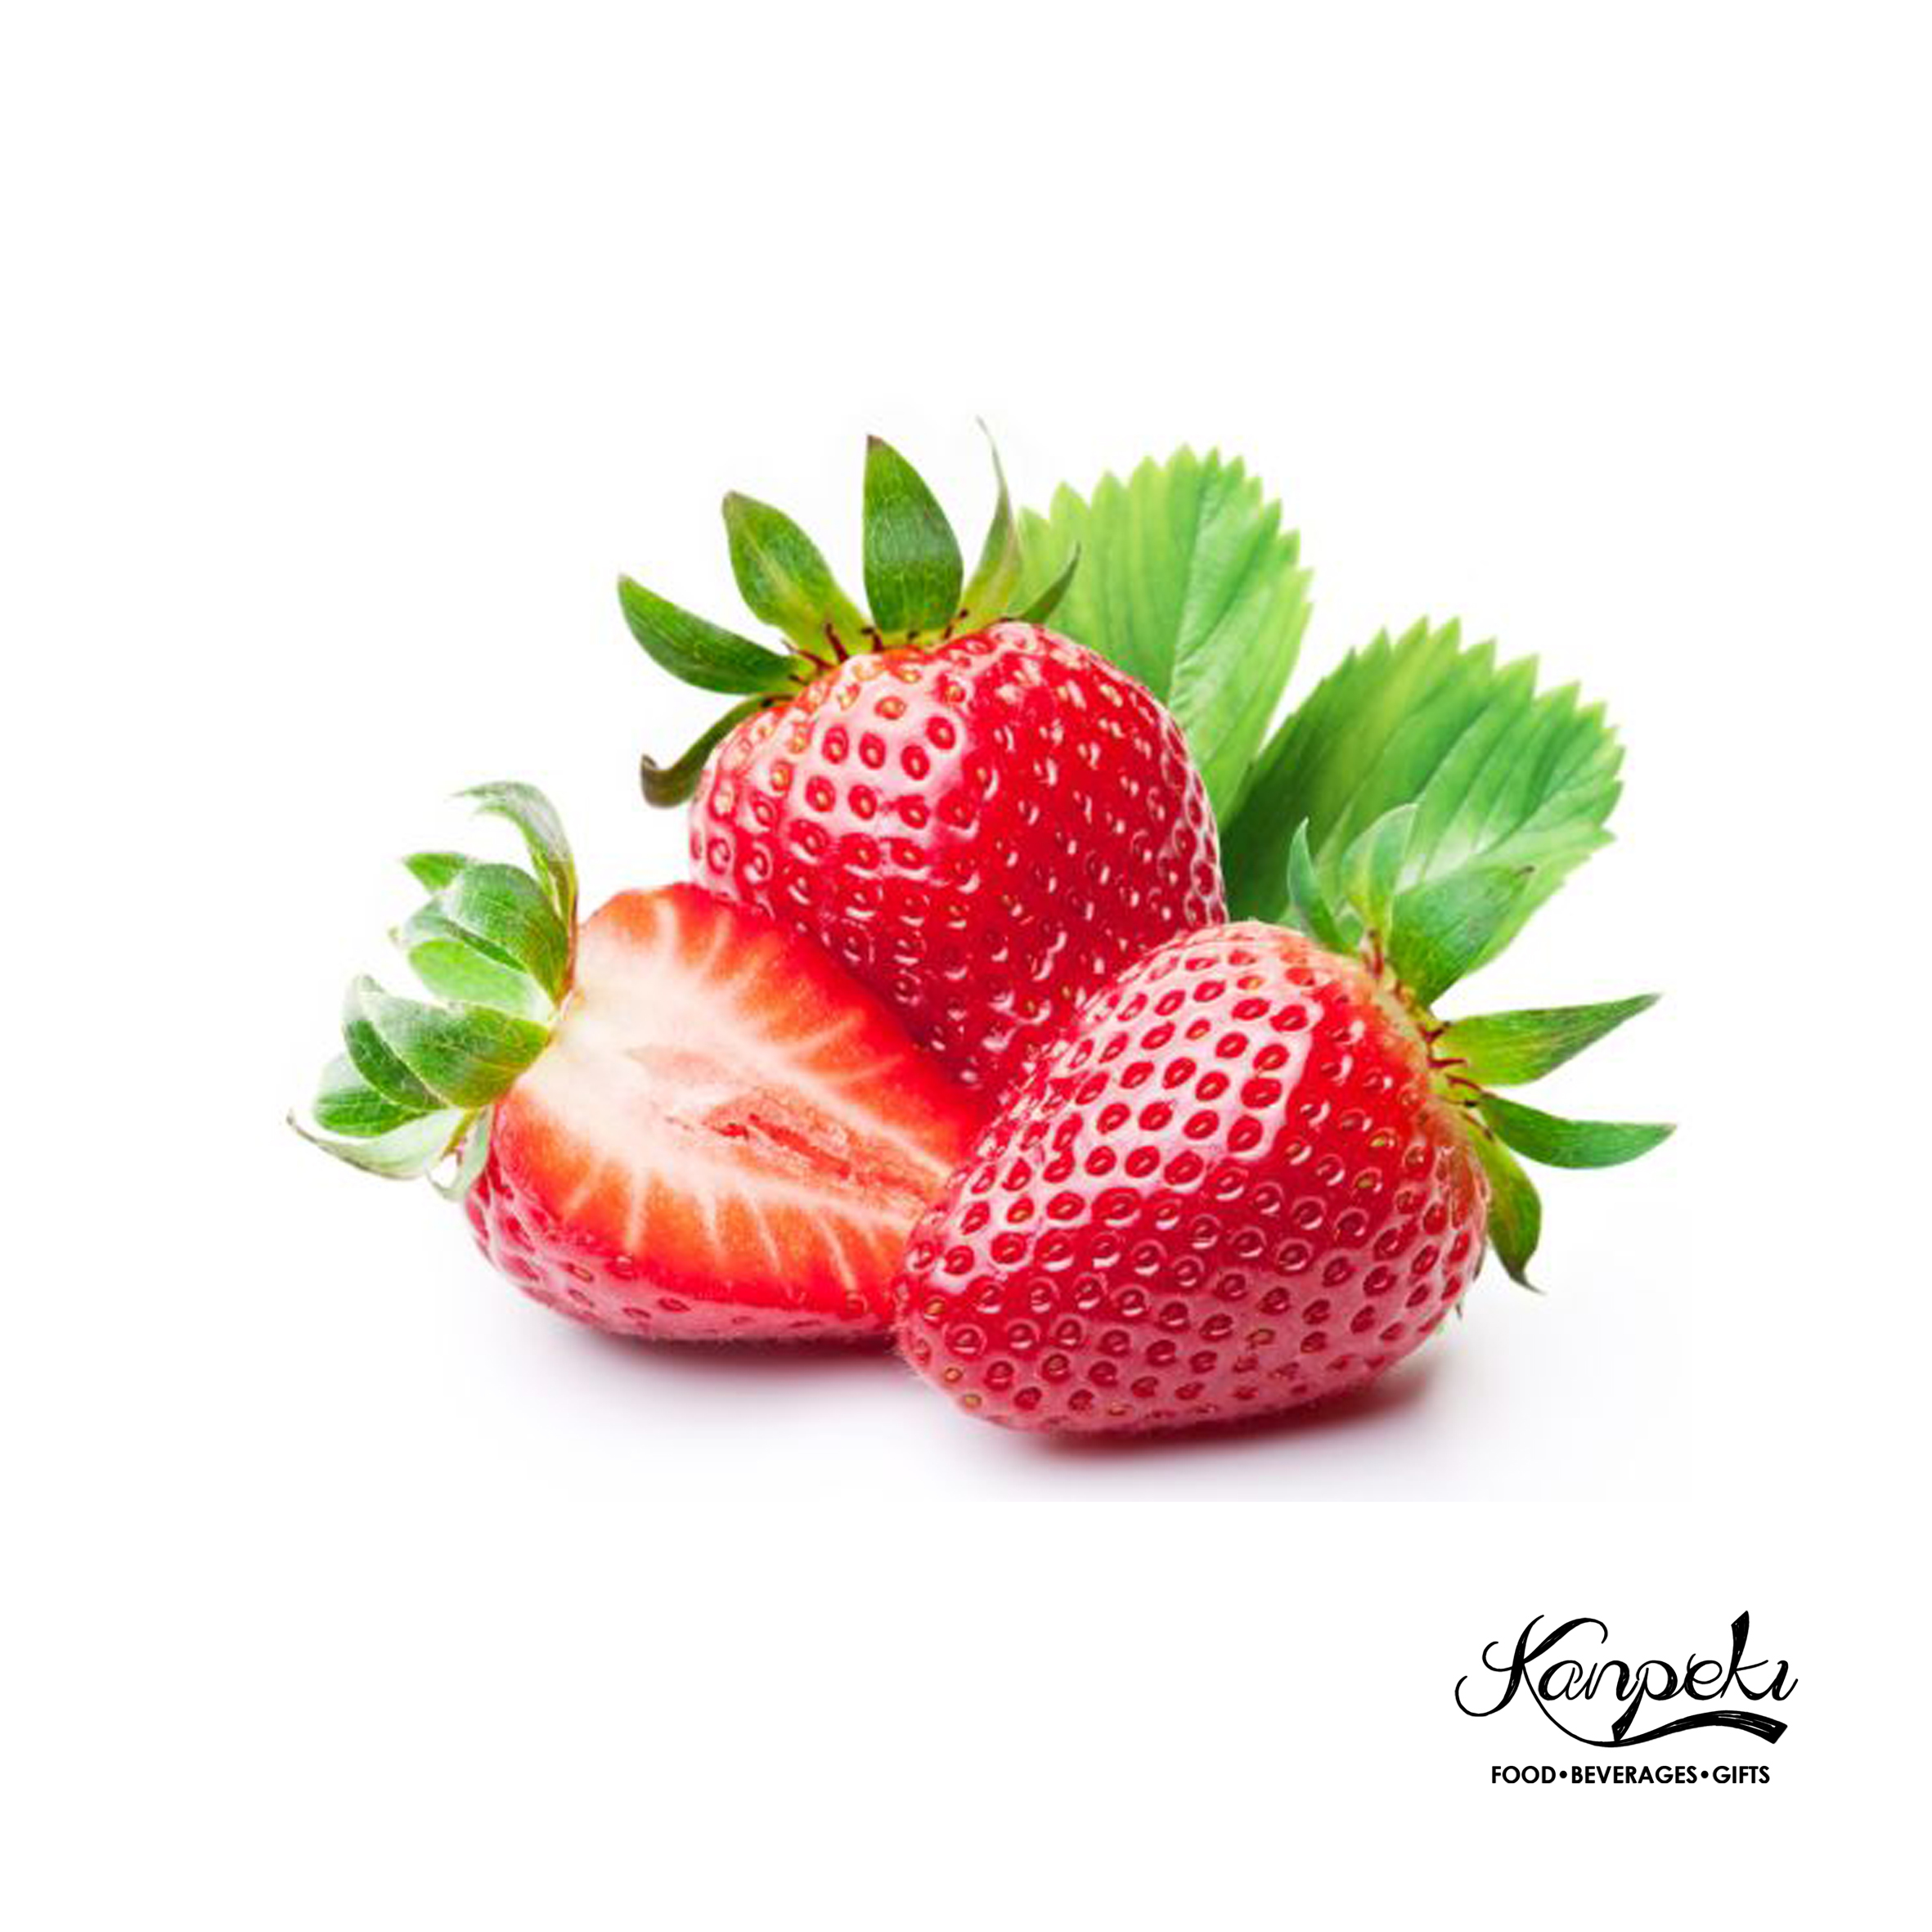 Kanpeki Strawberry Drinks 100 Fruit Juice Picture Malee.jpg